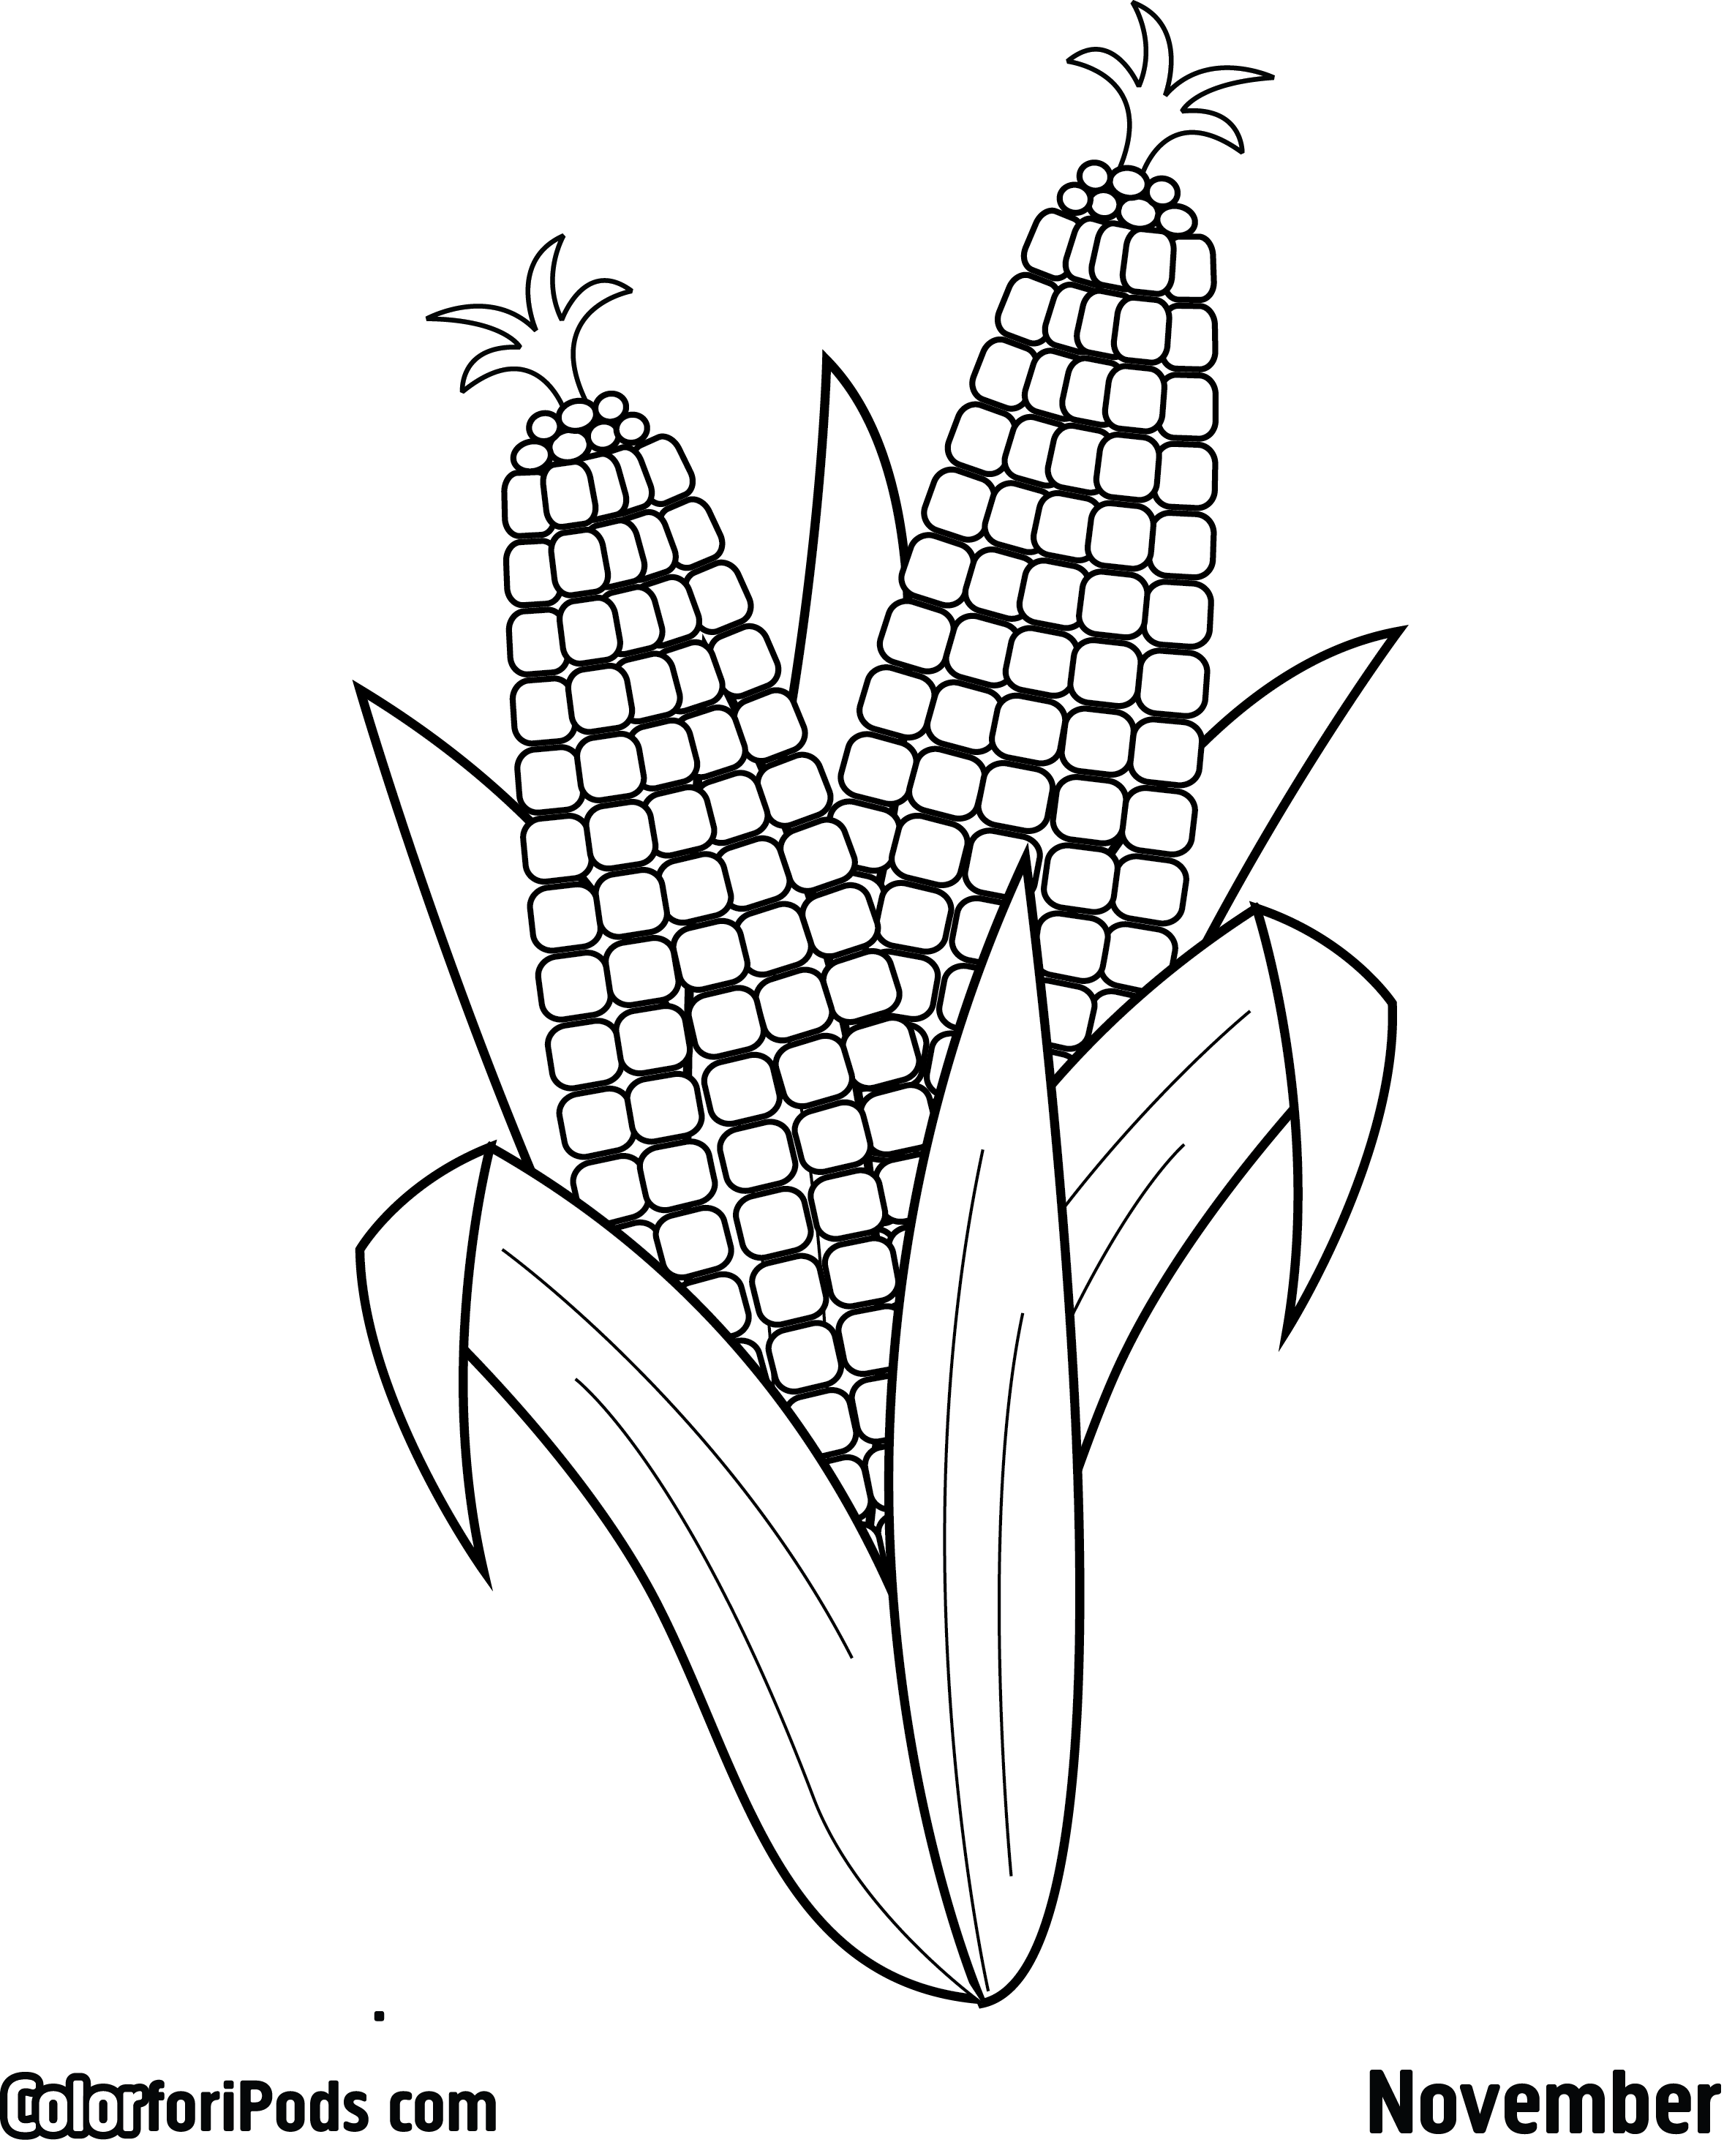 Ears Of Corn Coloring Pages Valentines Day Coloring Page Coloring Pages Coloring Sheets